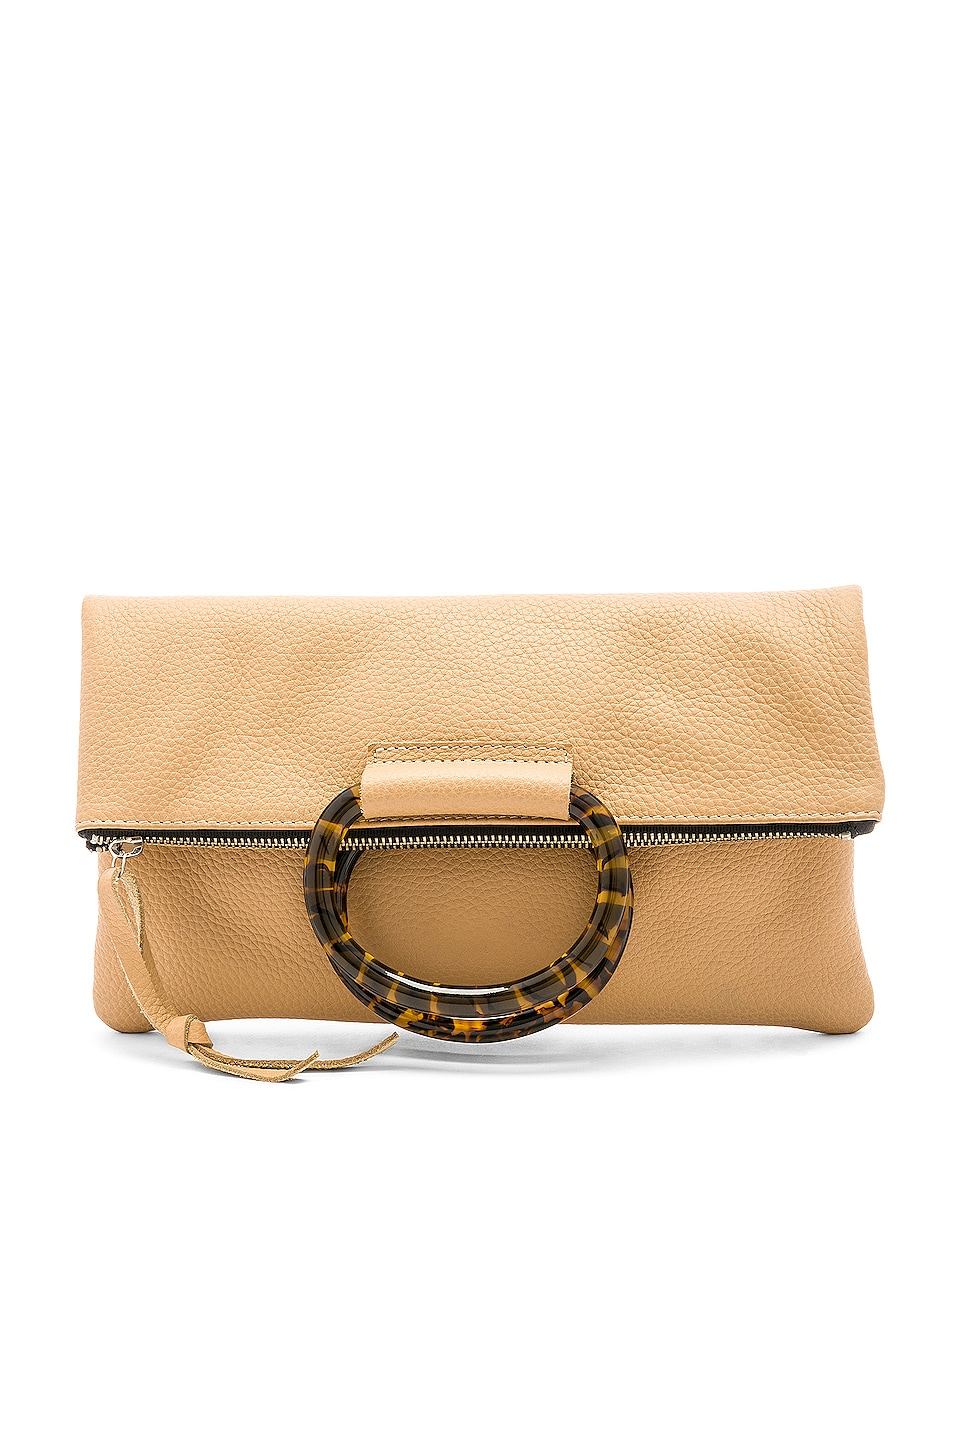 Oliveve Jolie Clutch in Oatmeal